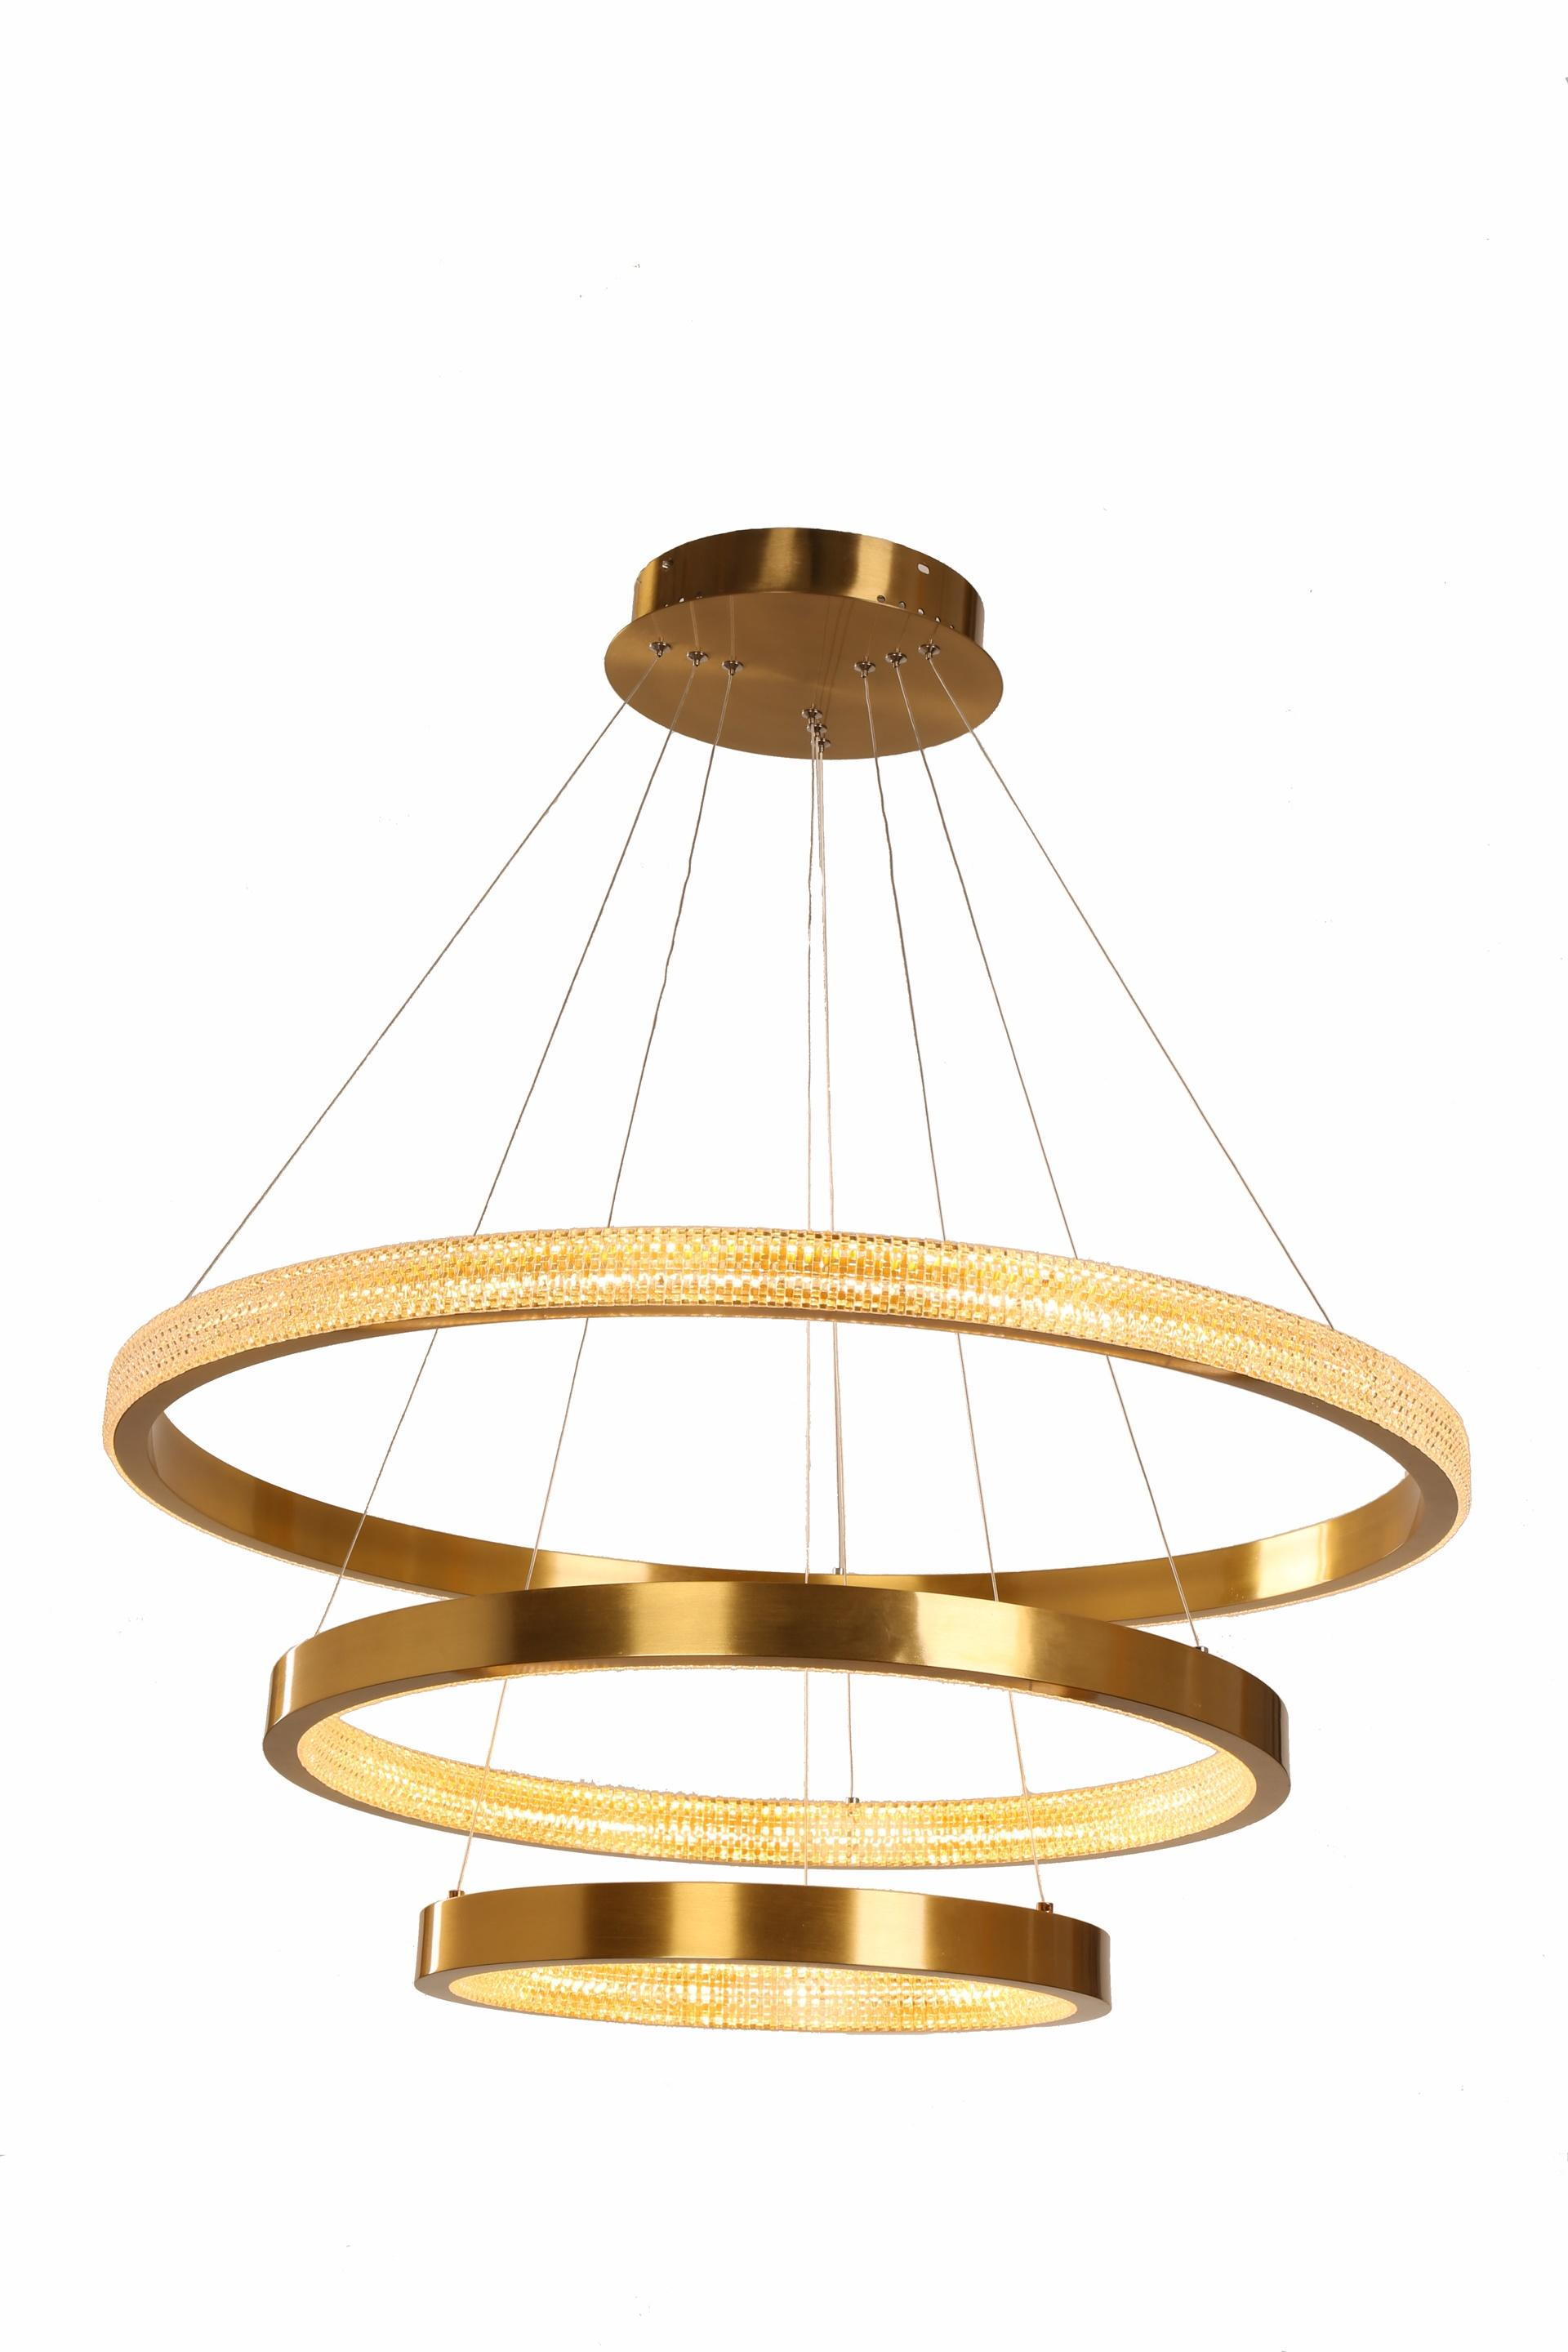 comtemporary modern lamps contemporary producer for dining room